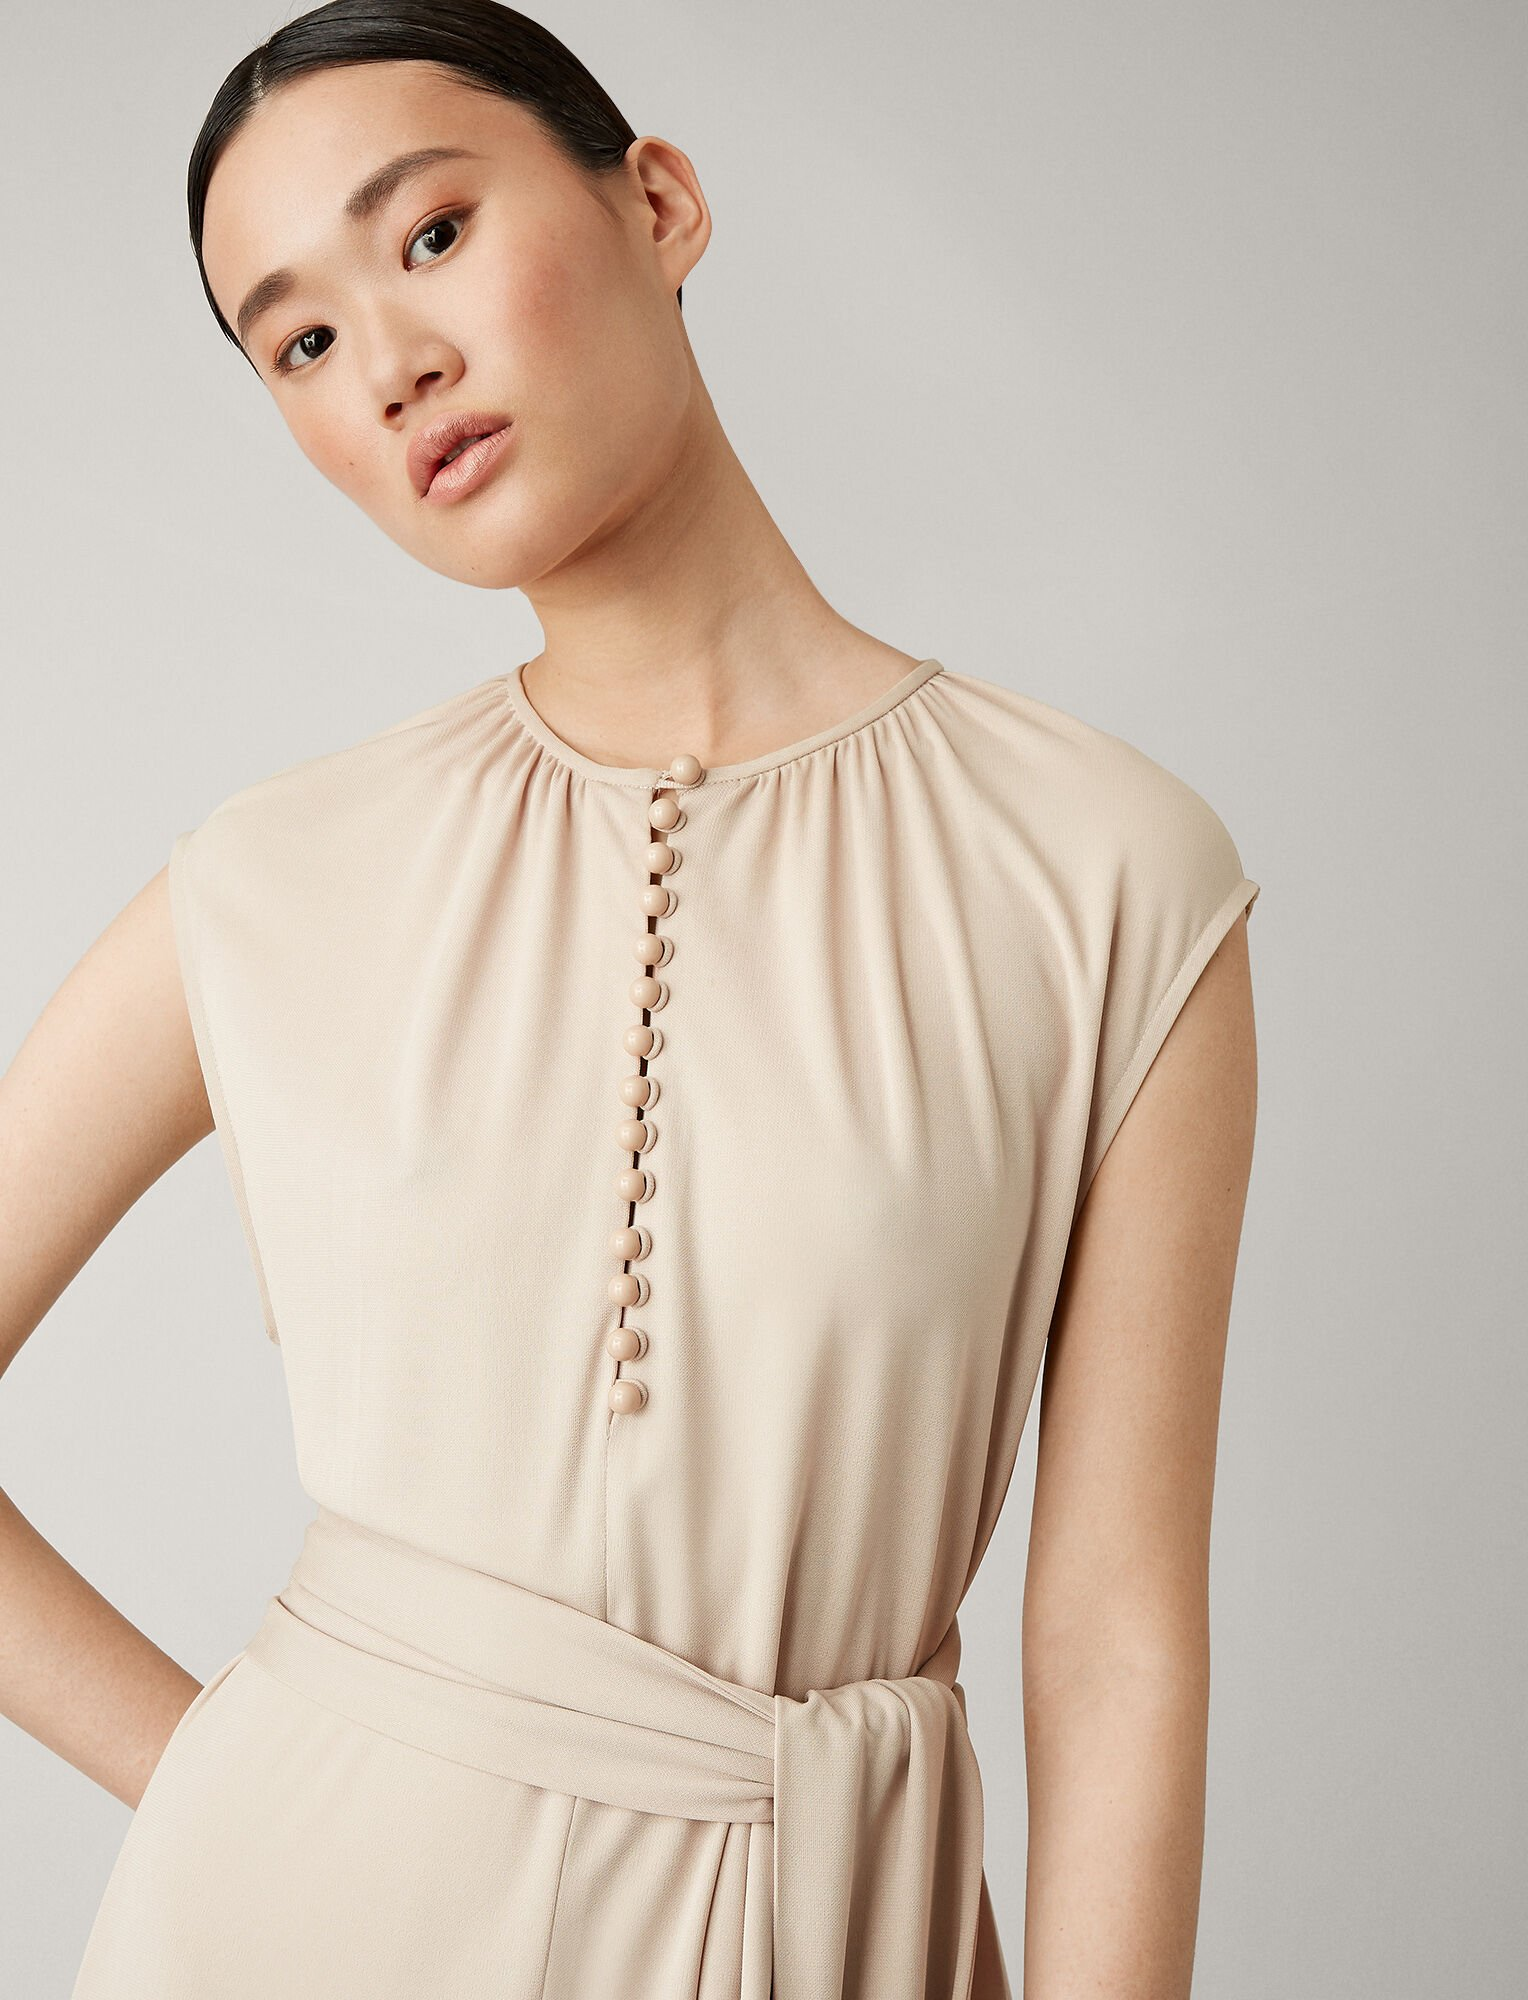 Joseph, Romy Crepe Jersey Dress, in OYSTER